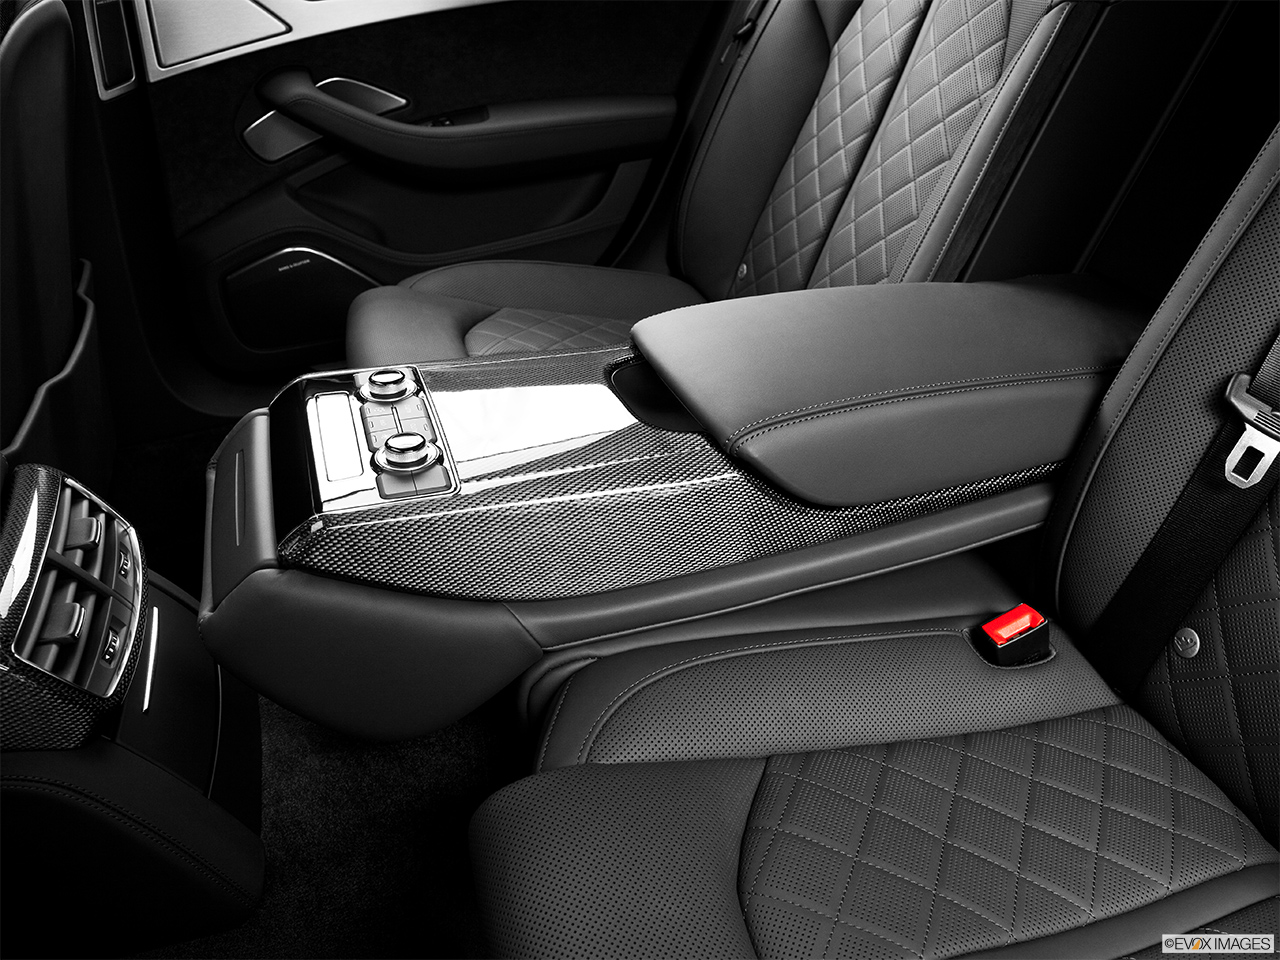 2014 Audi S8 4.0 TFSI Rear center console with closed lid from driver's side looking down.